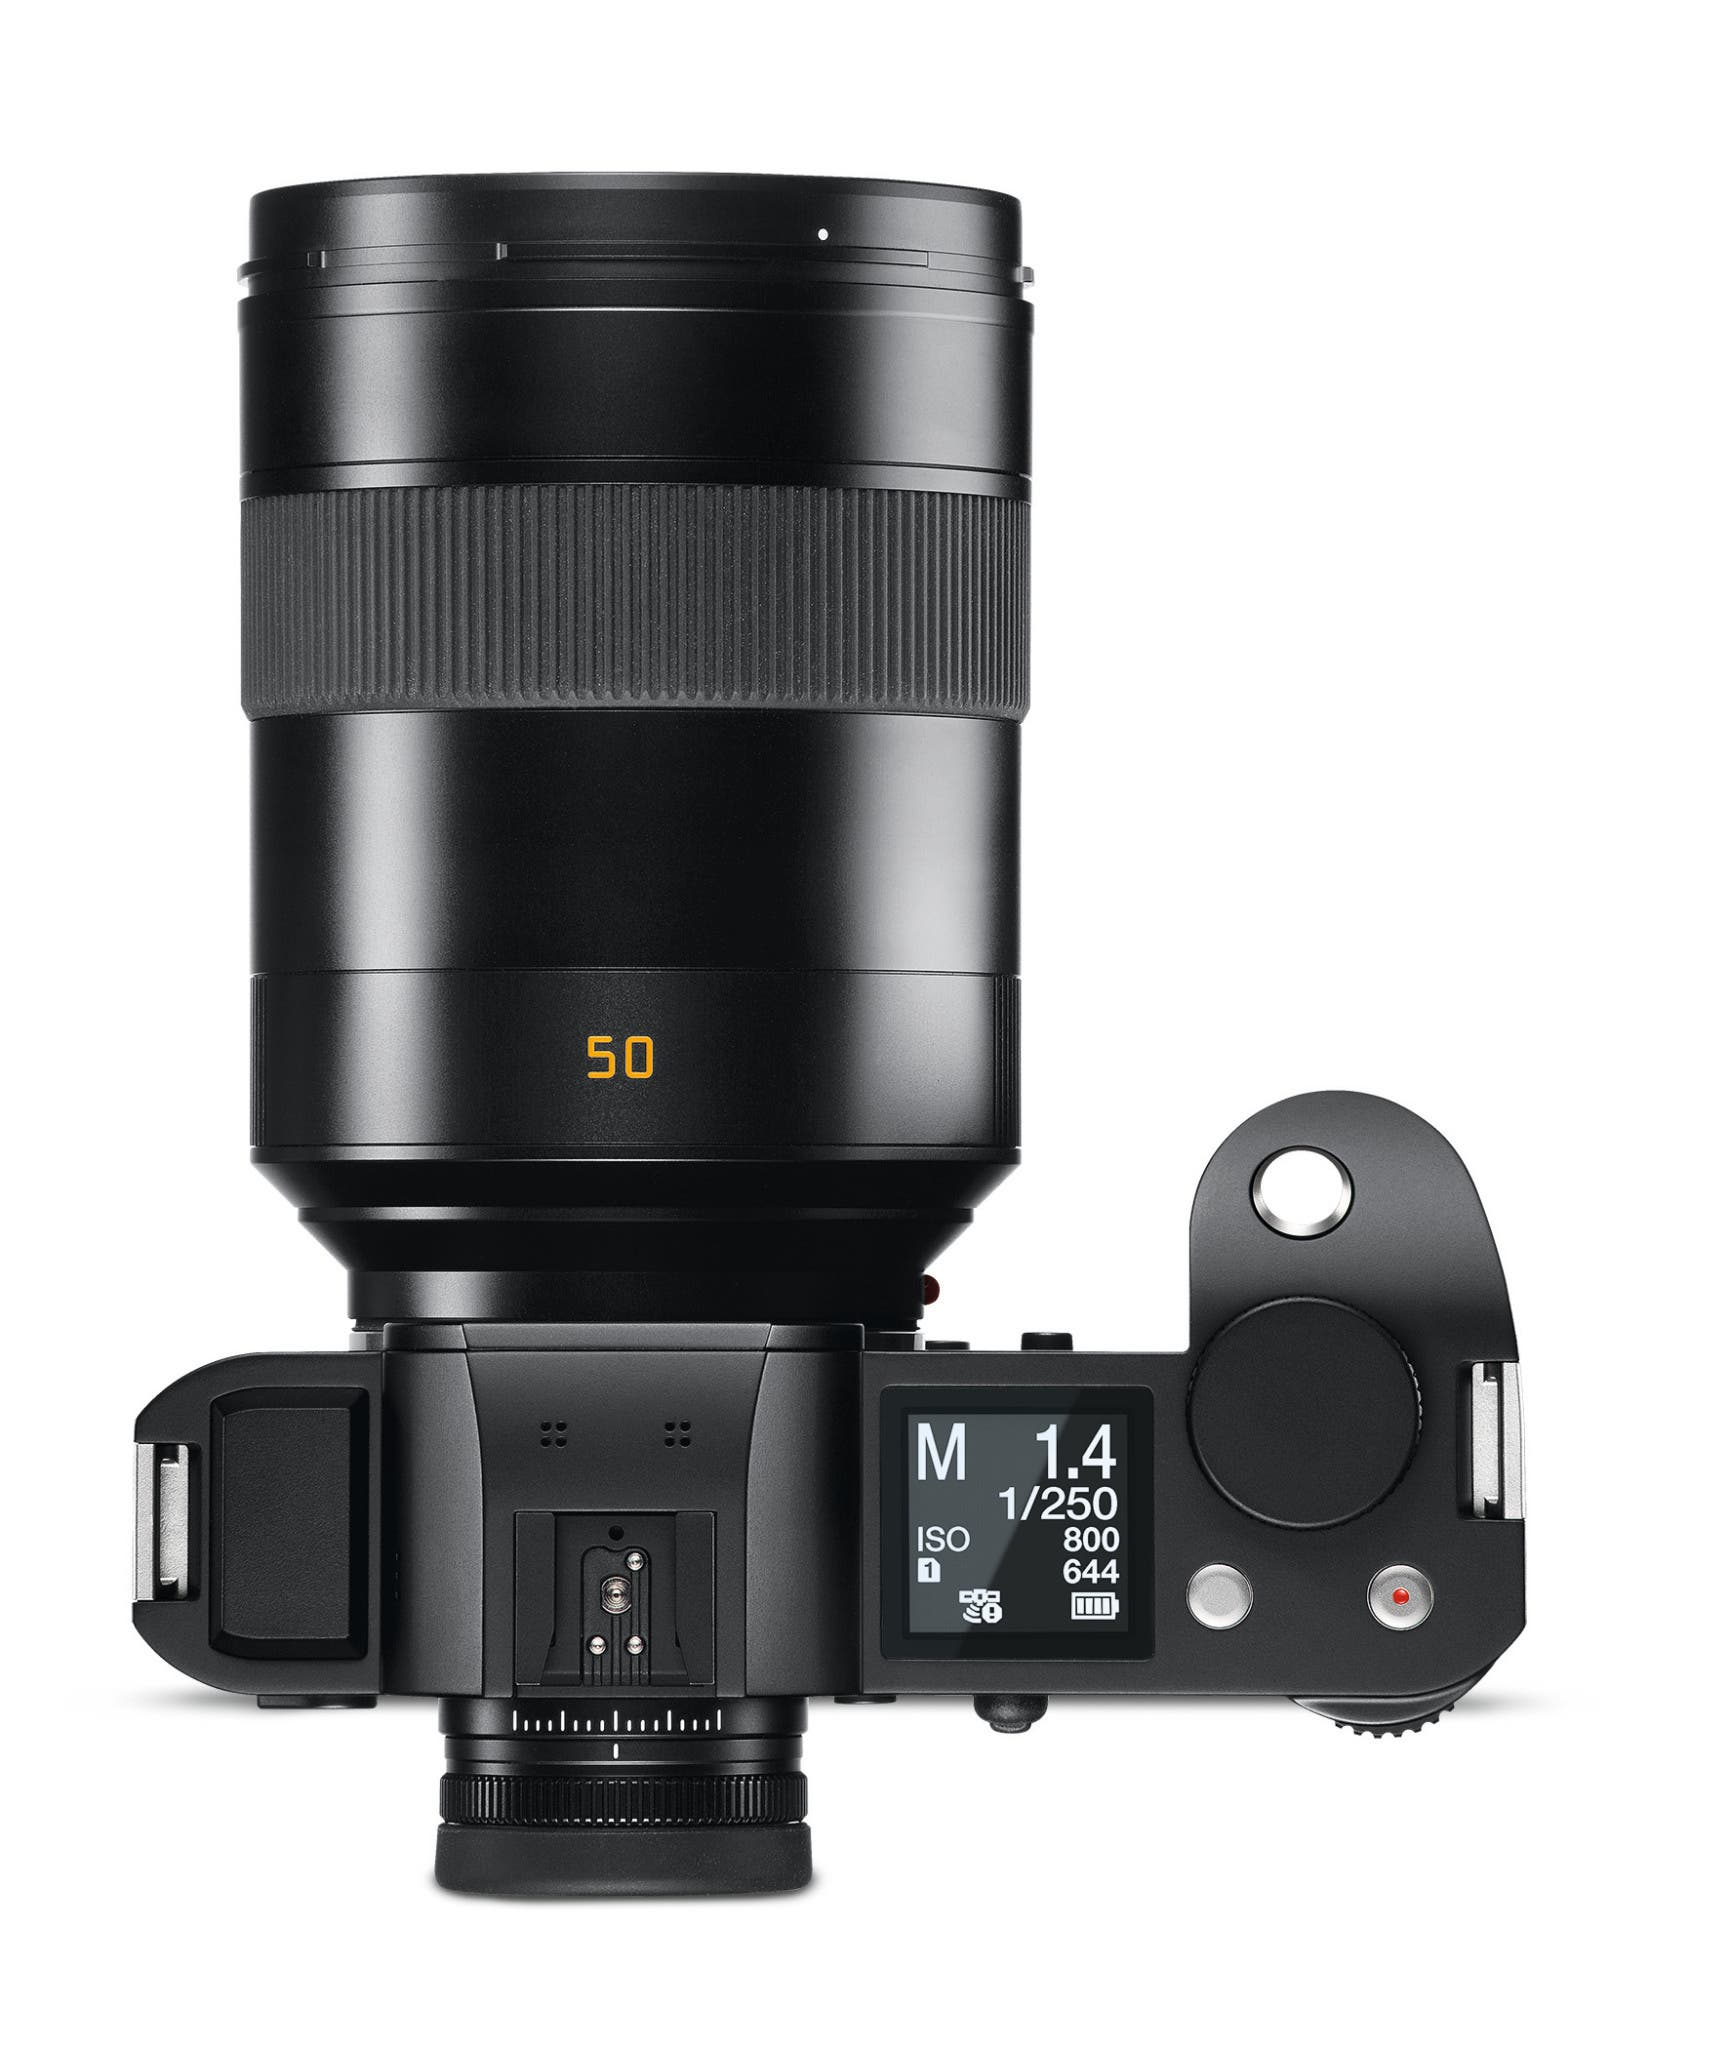 The Leica Summilux-SL 50mm f1.4 ASPH for the SL System Finally Makes a Splash